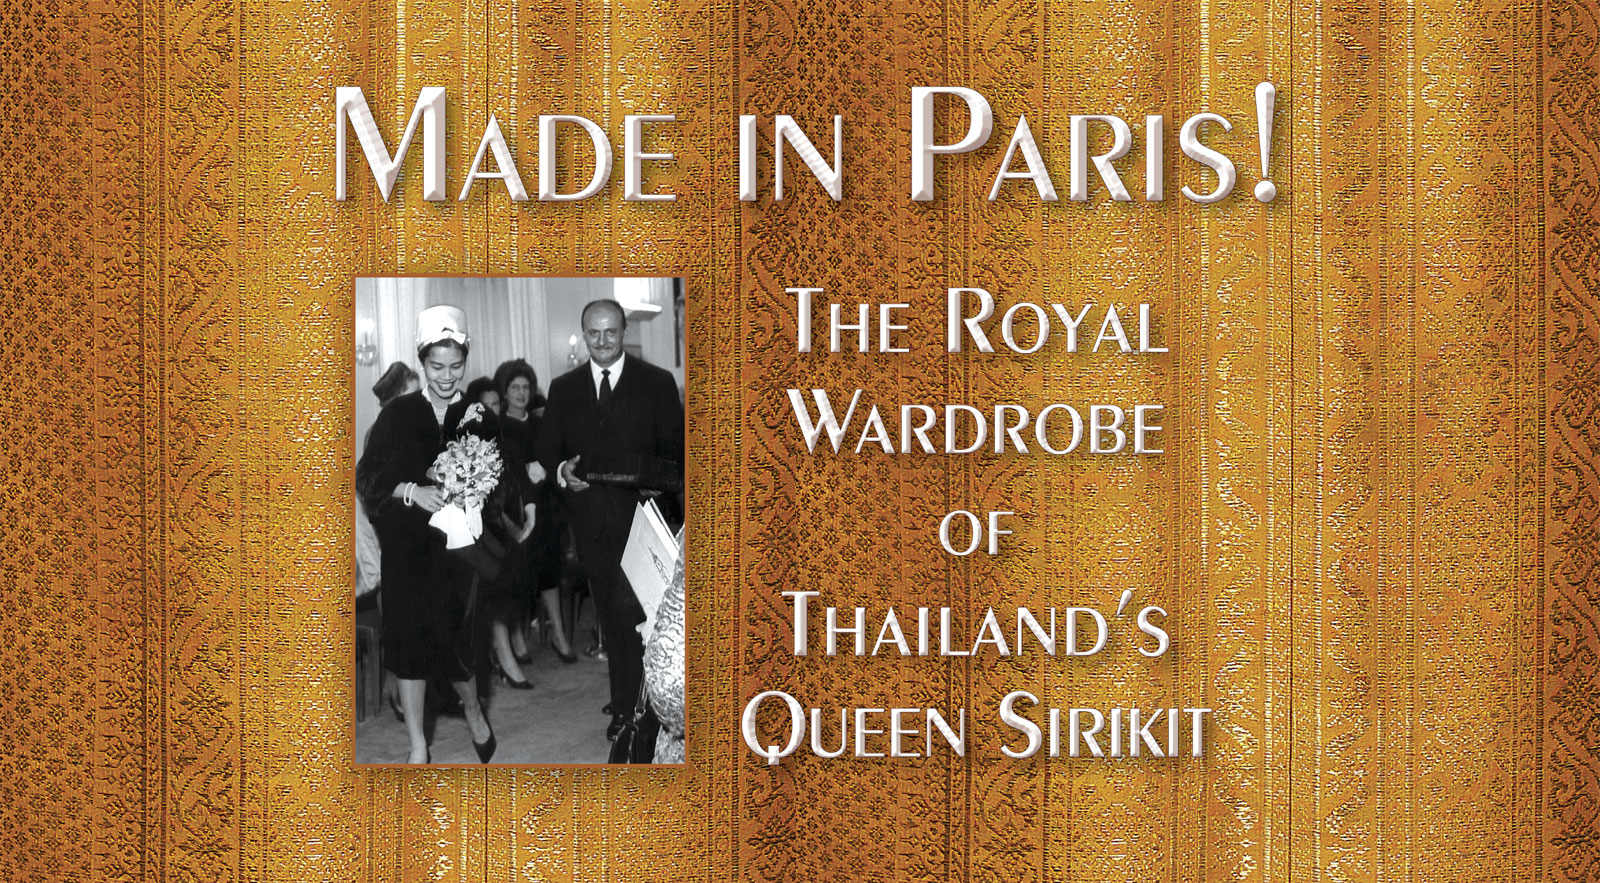 PIERRE BALMAIN escorts Her Majesty Queen Sirikit to a private showing of his Autumn 1960 collection at Maison Balmain in Paris, October 12, 1960.  Photograph courtesy of Pierre Balmain S.A.